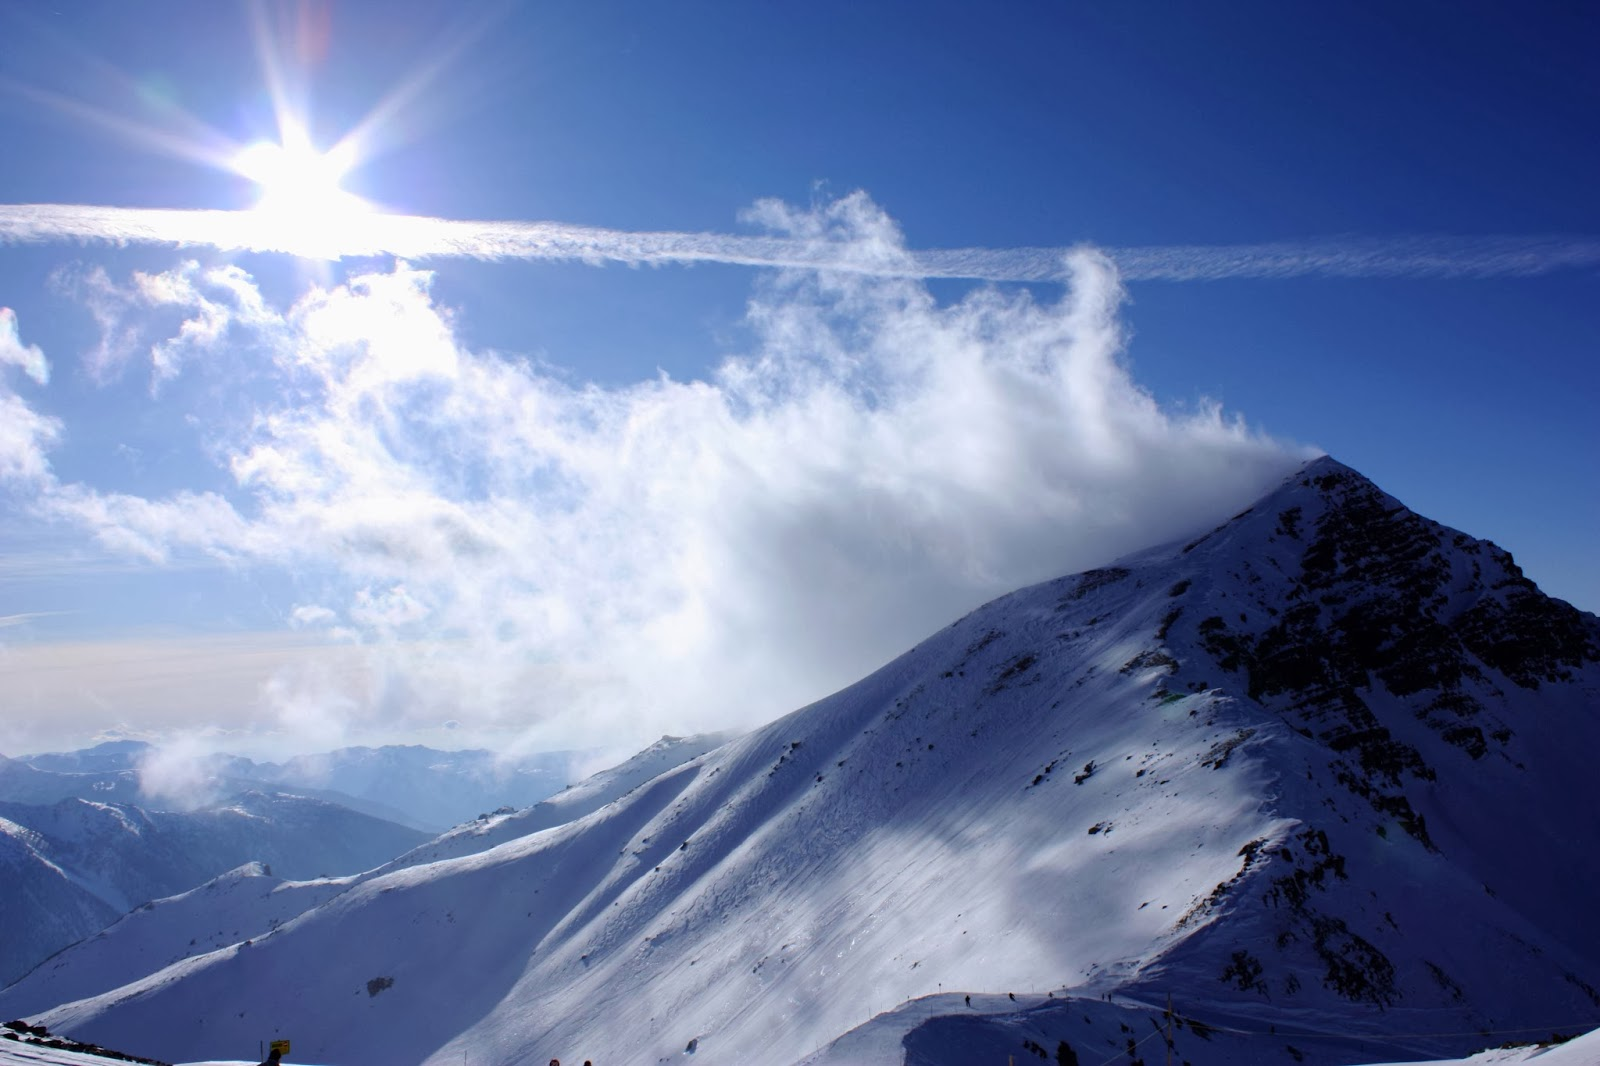 Snow Mountain Cloud Beautiful Nature Images And Wallpapers